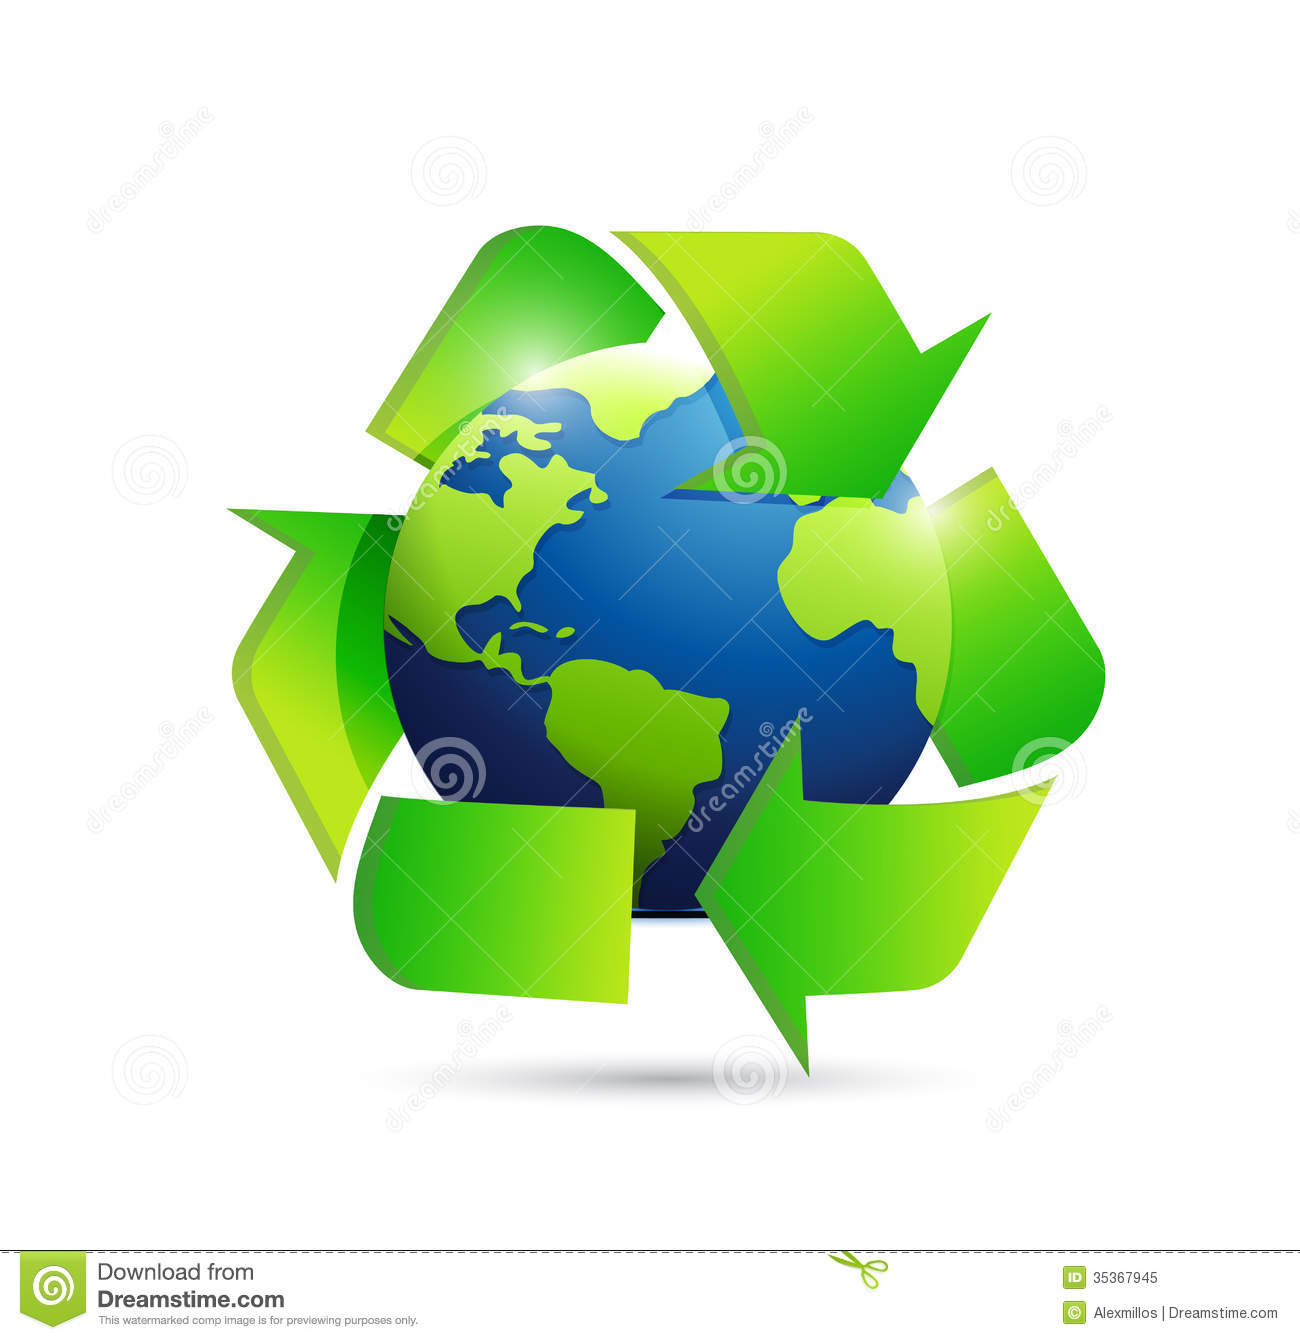 Recycle symbol world map stock image image of illustration 4791349 world map globe recycle symbol illustration royalty free stock photo biocorpaavc Gallery